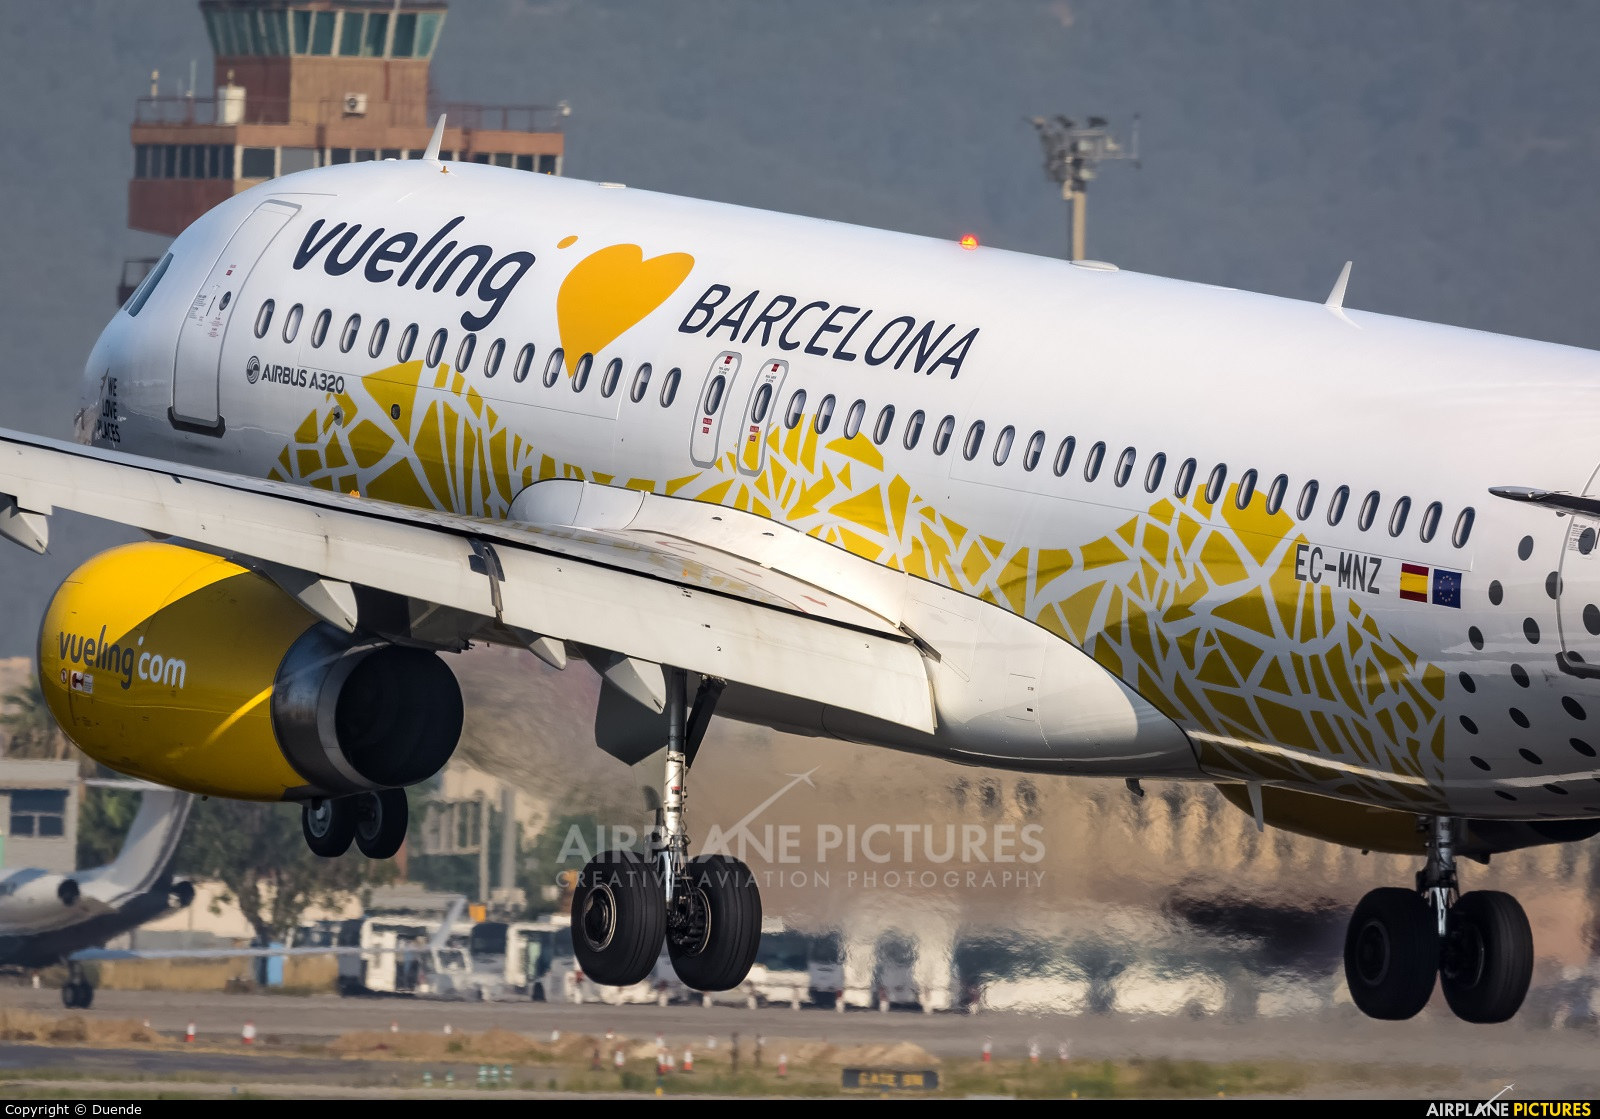 Ec mnz vueling airlines airbus a320 at barcelona el for Oficinas vueling barcelona